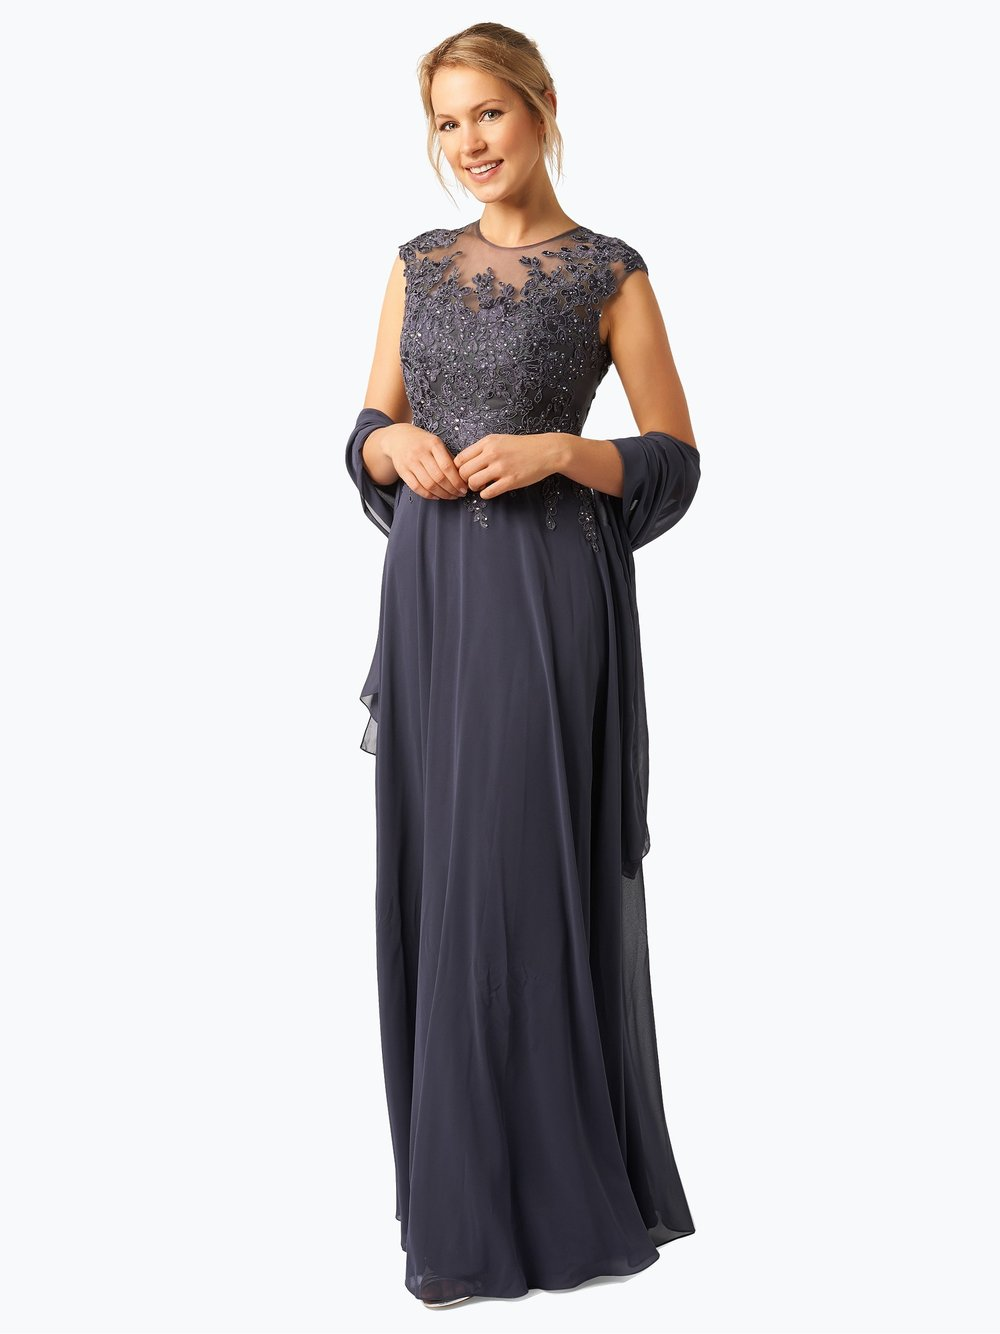 Damen Abendkleid mit Stola grau Luxuar Fashion rdgB6FT